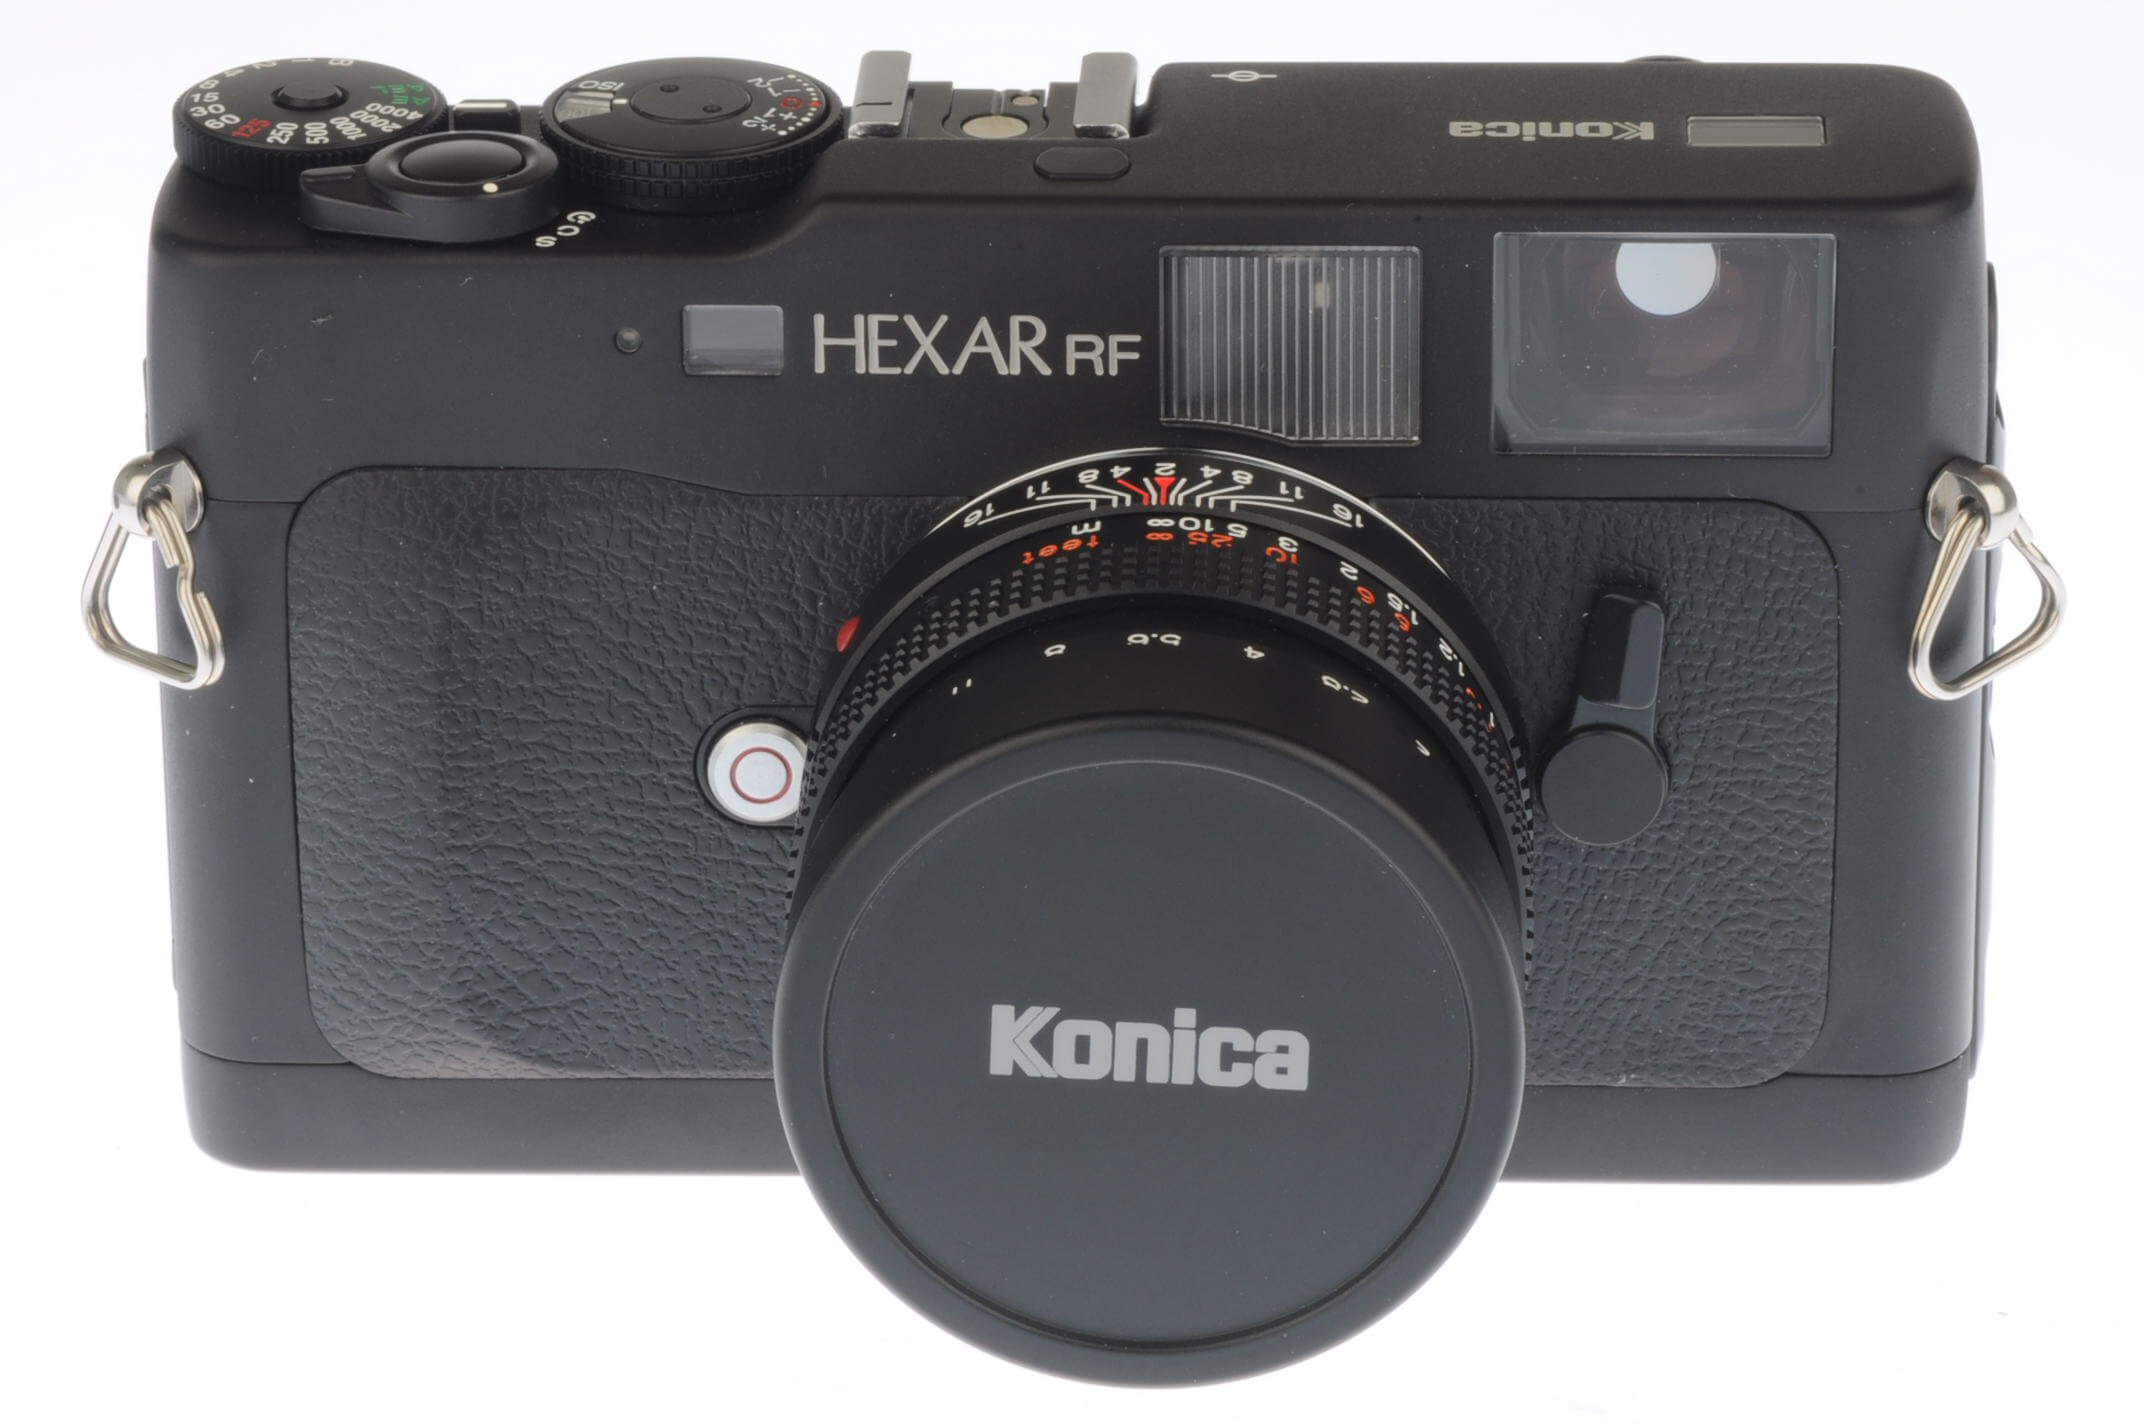 Konica Hexar RF with 50mm f2 lens and flash in presentation box